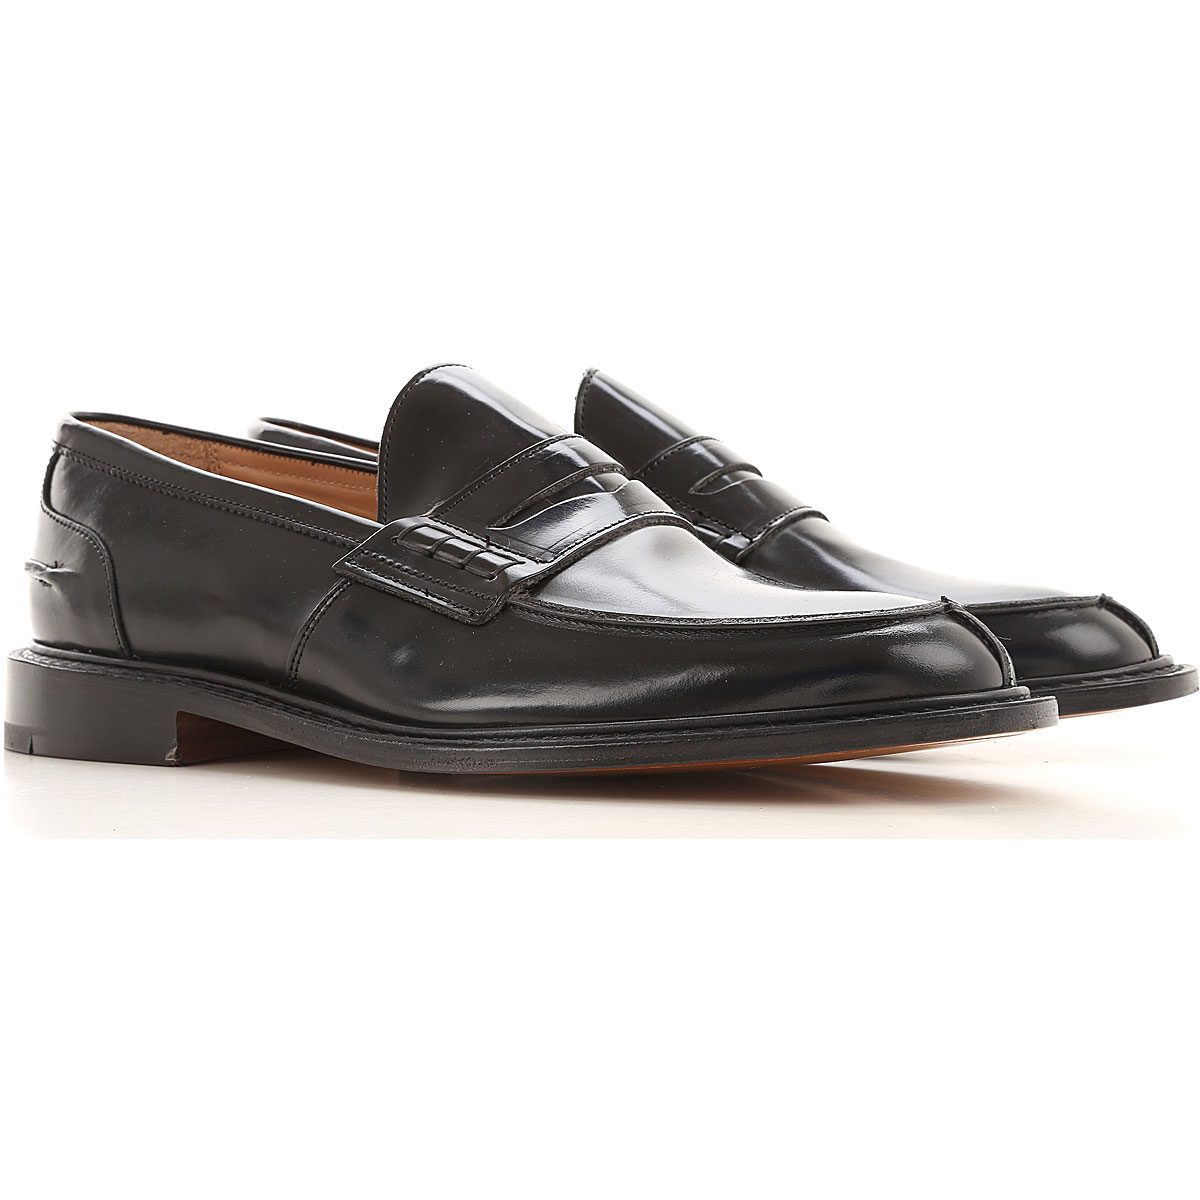 Trickers Loafers for Men On Sale, Black, Leather, 2019, 10.5 11 8 8.5 9 9.5